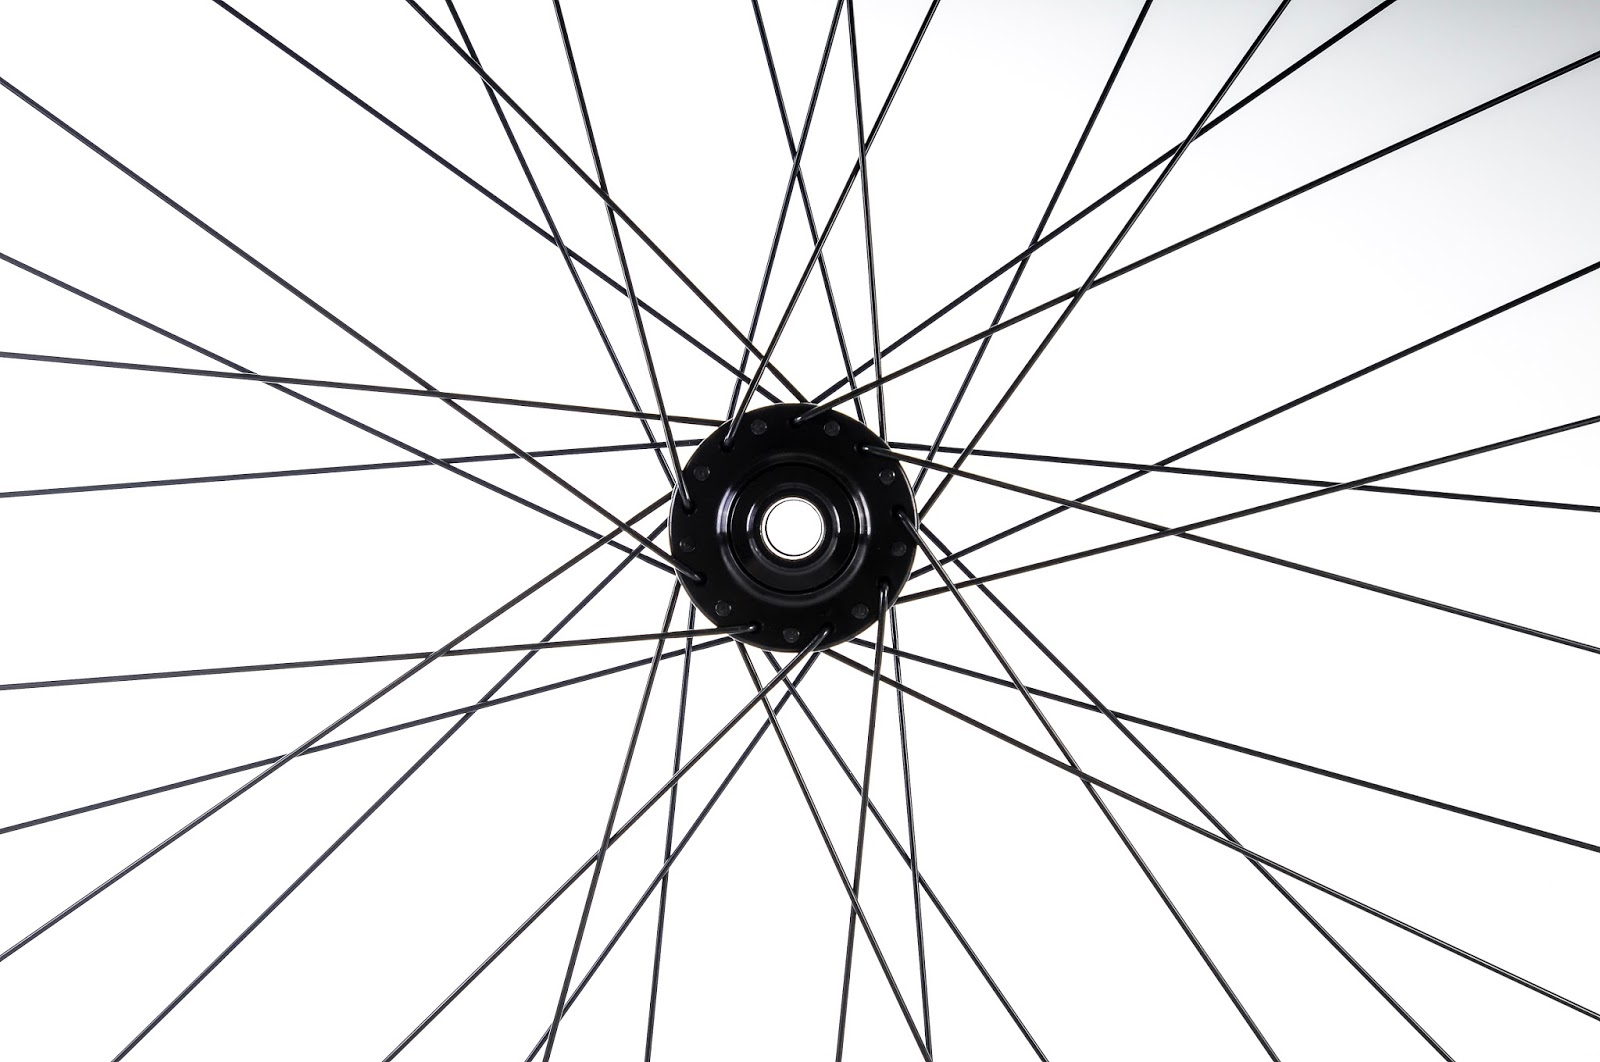 touring wheelset  1 spare front wheel   29 u0026quot  velocity cliffhanger with schmidt dynamo hub  hope